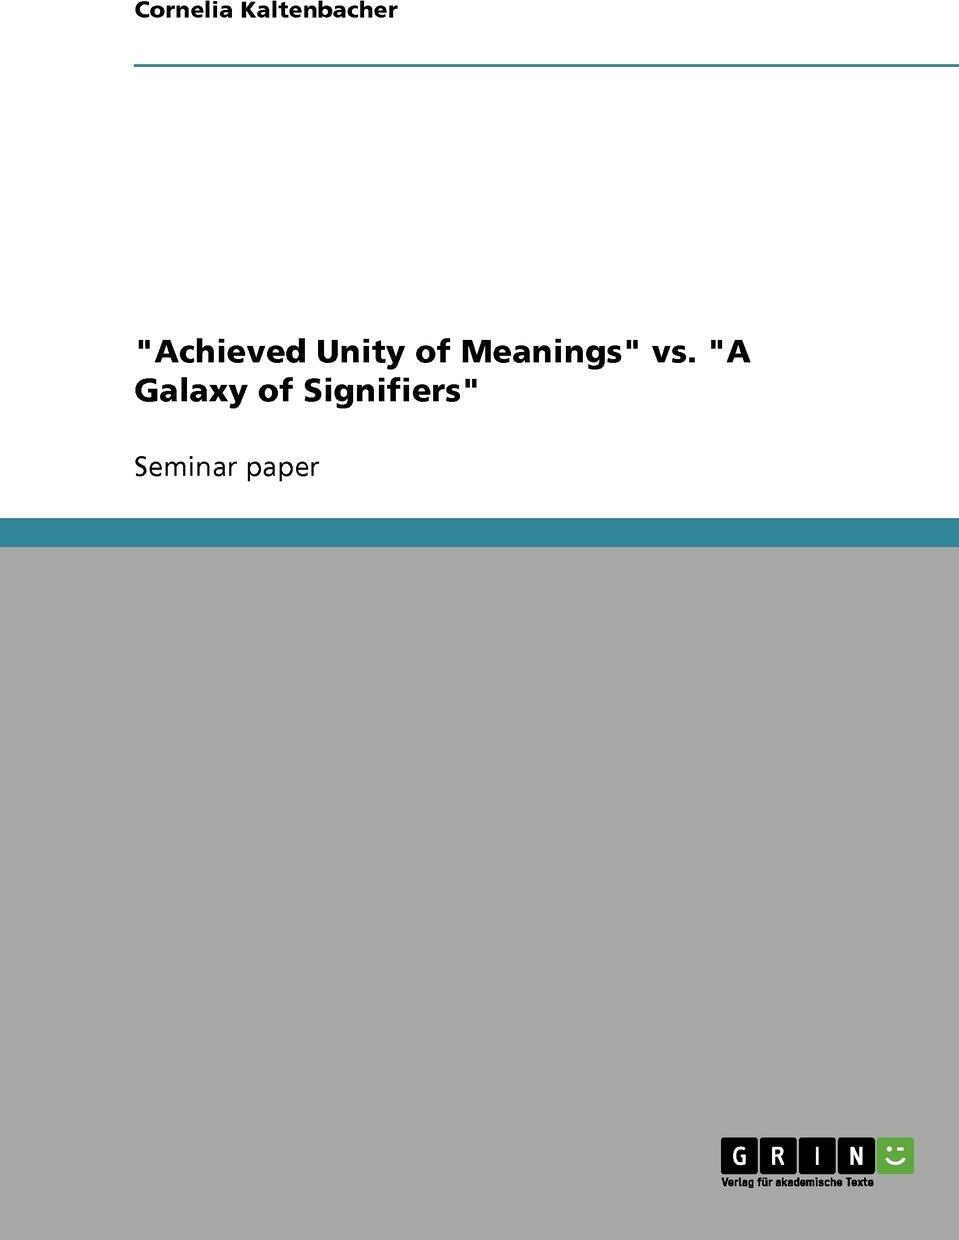 """Cornelia Kaltenbacher. """"Achieved Unity of Meanings"""" vs. """"A Galaxy of Signifiers"""""""